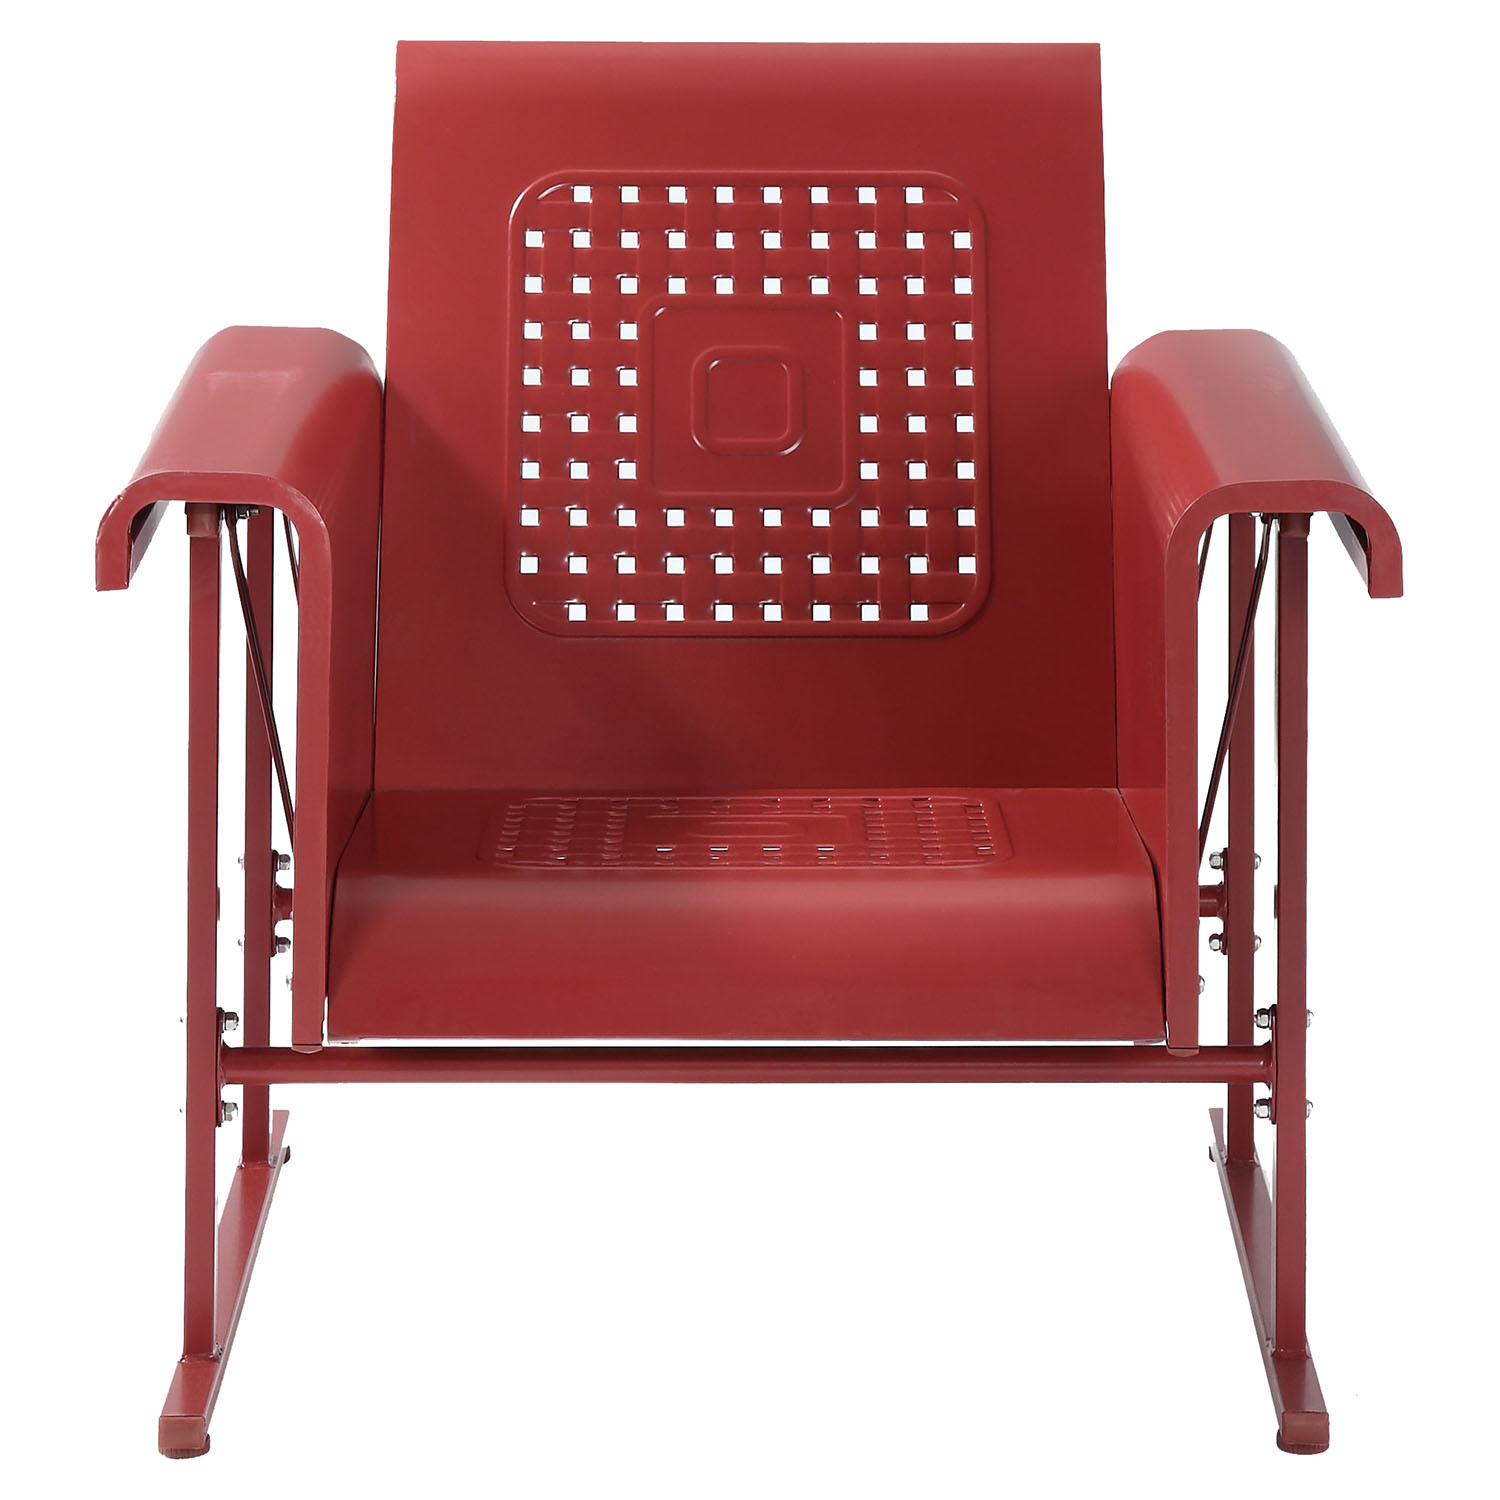 Veranda Single Glider Chair - Coral Red - CROS-CO1005A-RE